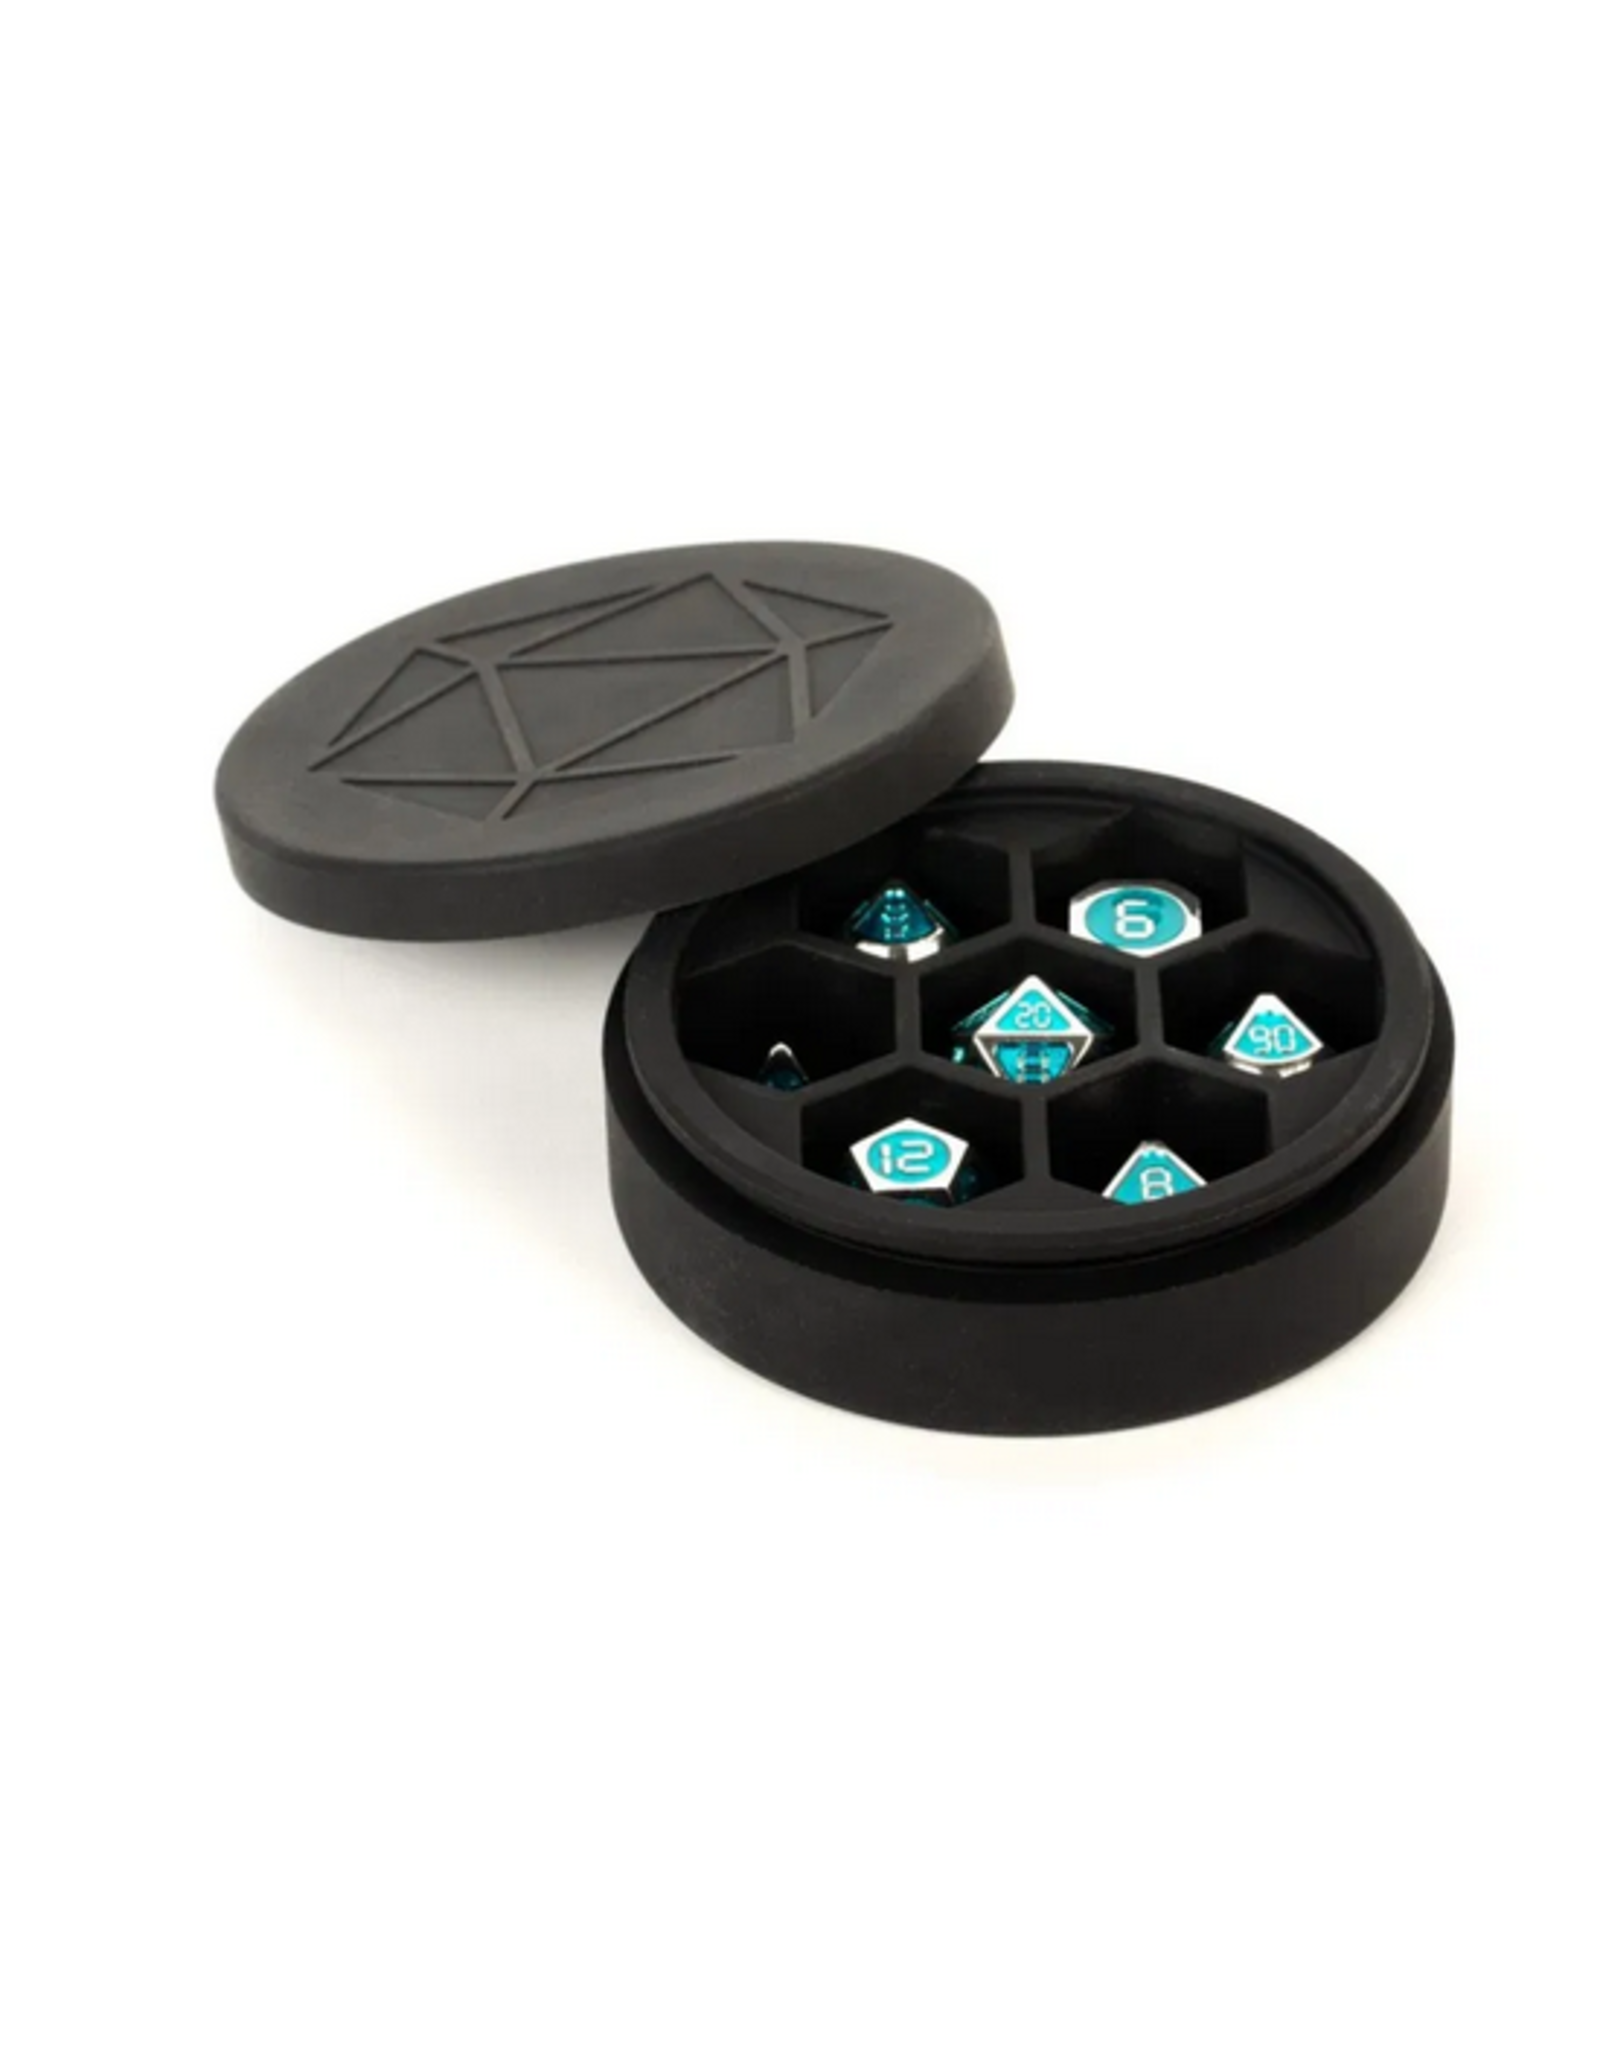 Metallic Dice Games Silicone Round Dice Case: BK